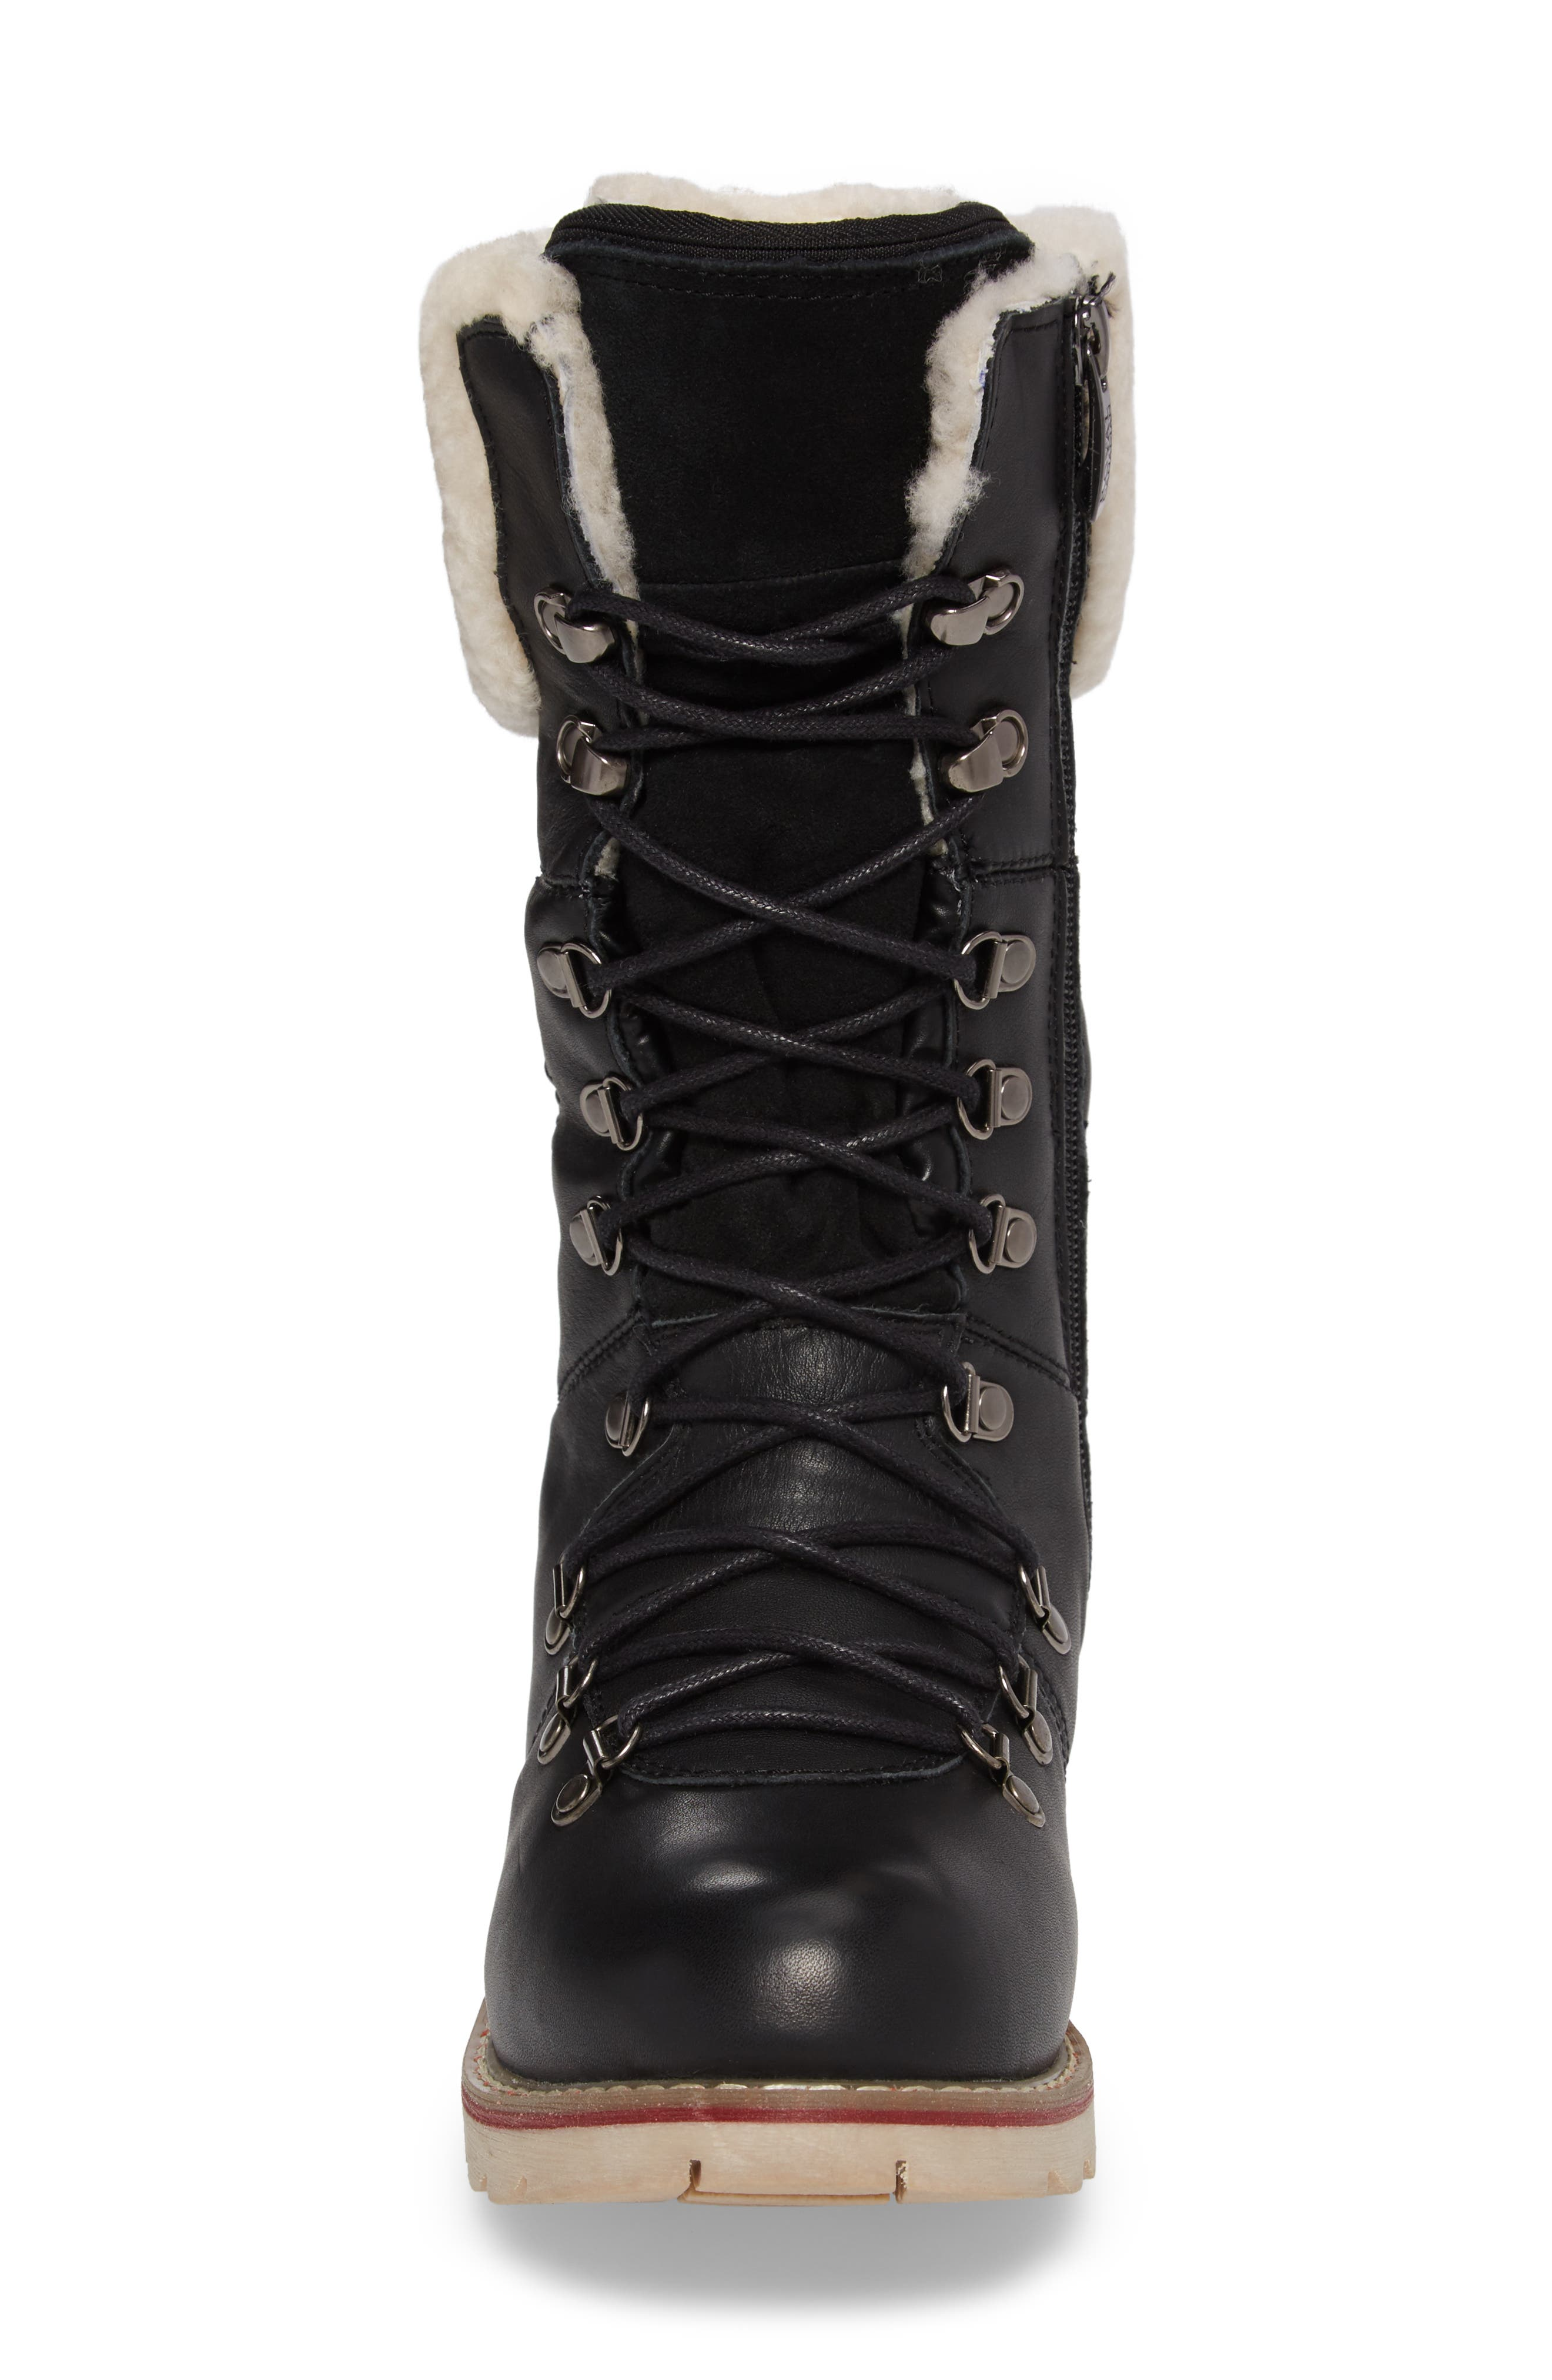 Louise Waterproof Snow Boot with Genuine Shearling Cuff,                             Alternate thumbnail 4, color,                             Black Leather